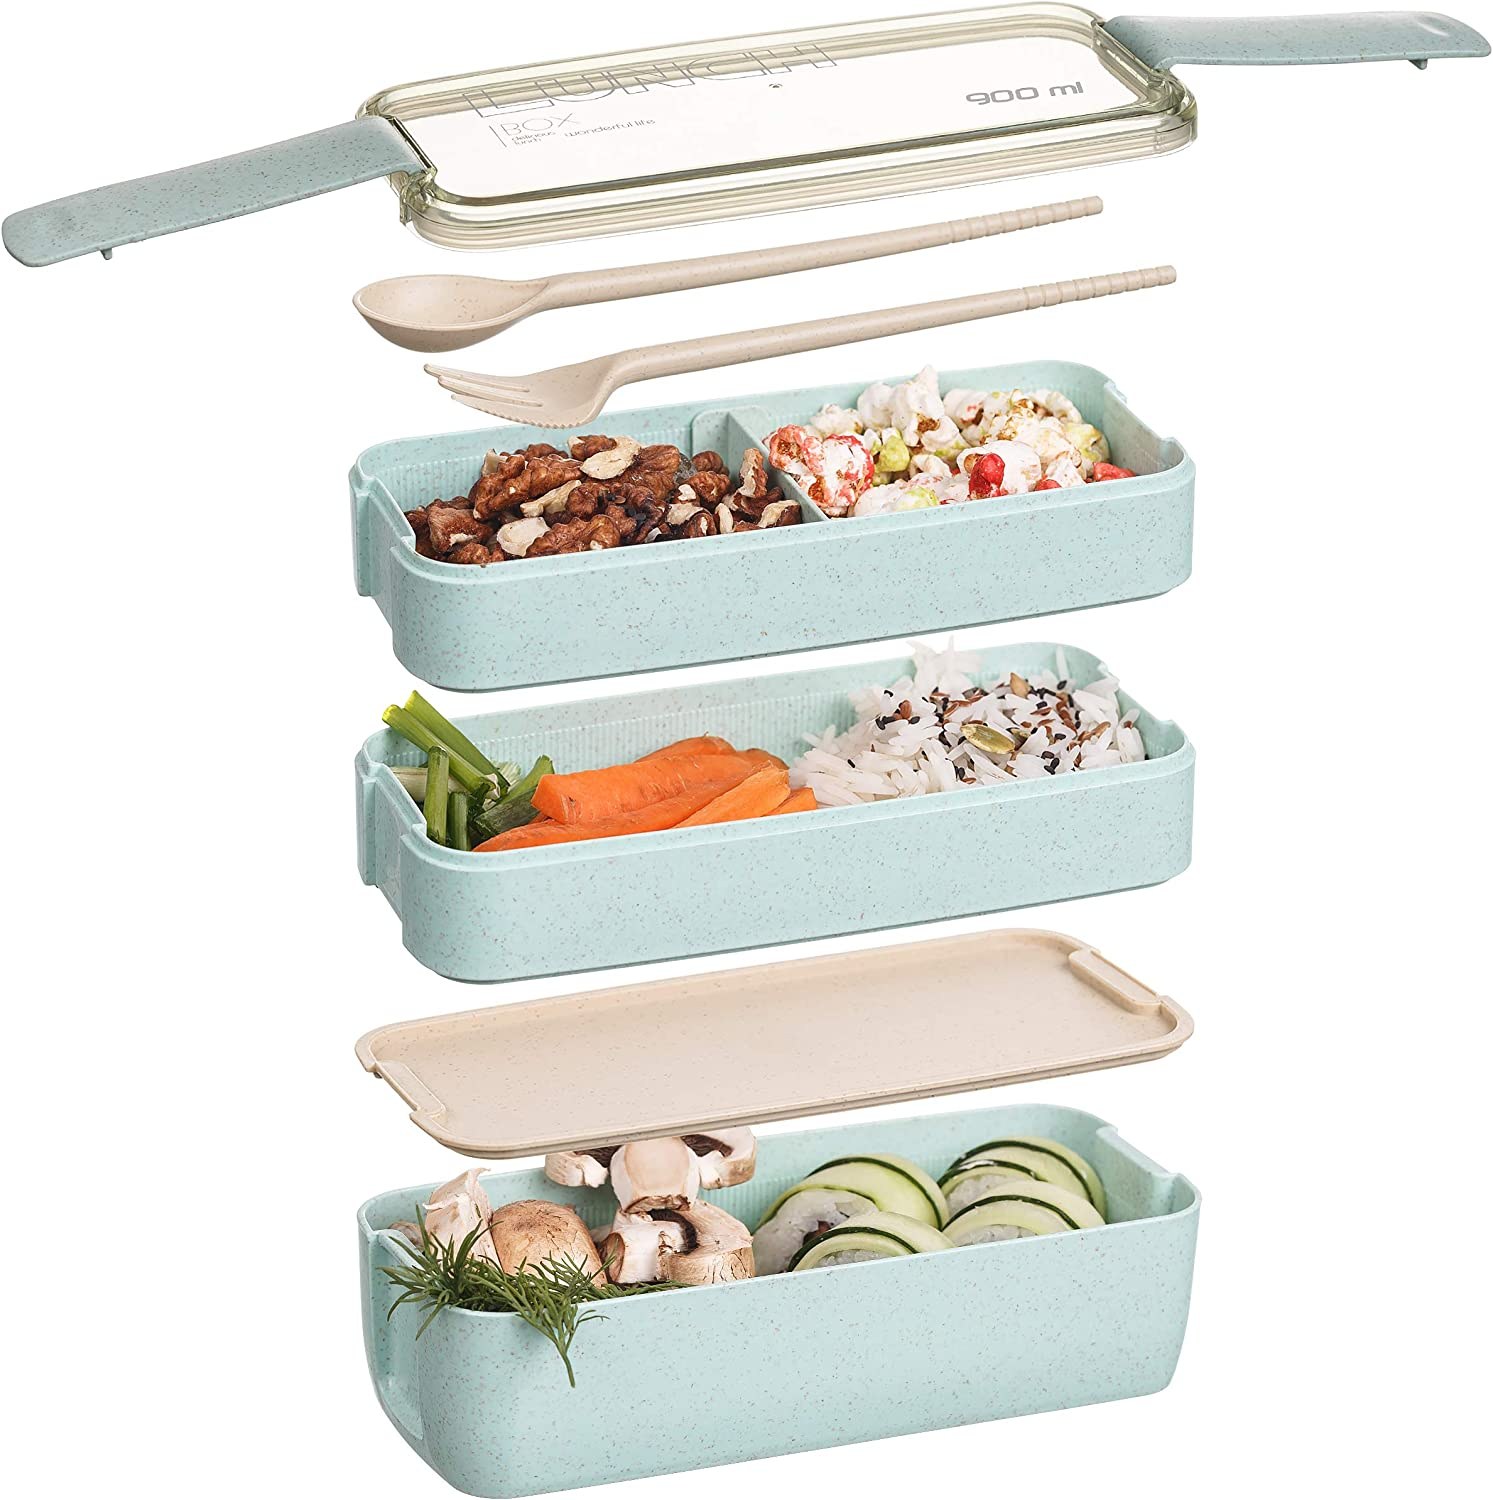 Bento lunch box kids- Meal prep Containers with divider- 3 Stackable Lunchbox, Microwave safe, Leakproof BPA Free- Built-in Plastic Silverware Utensils